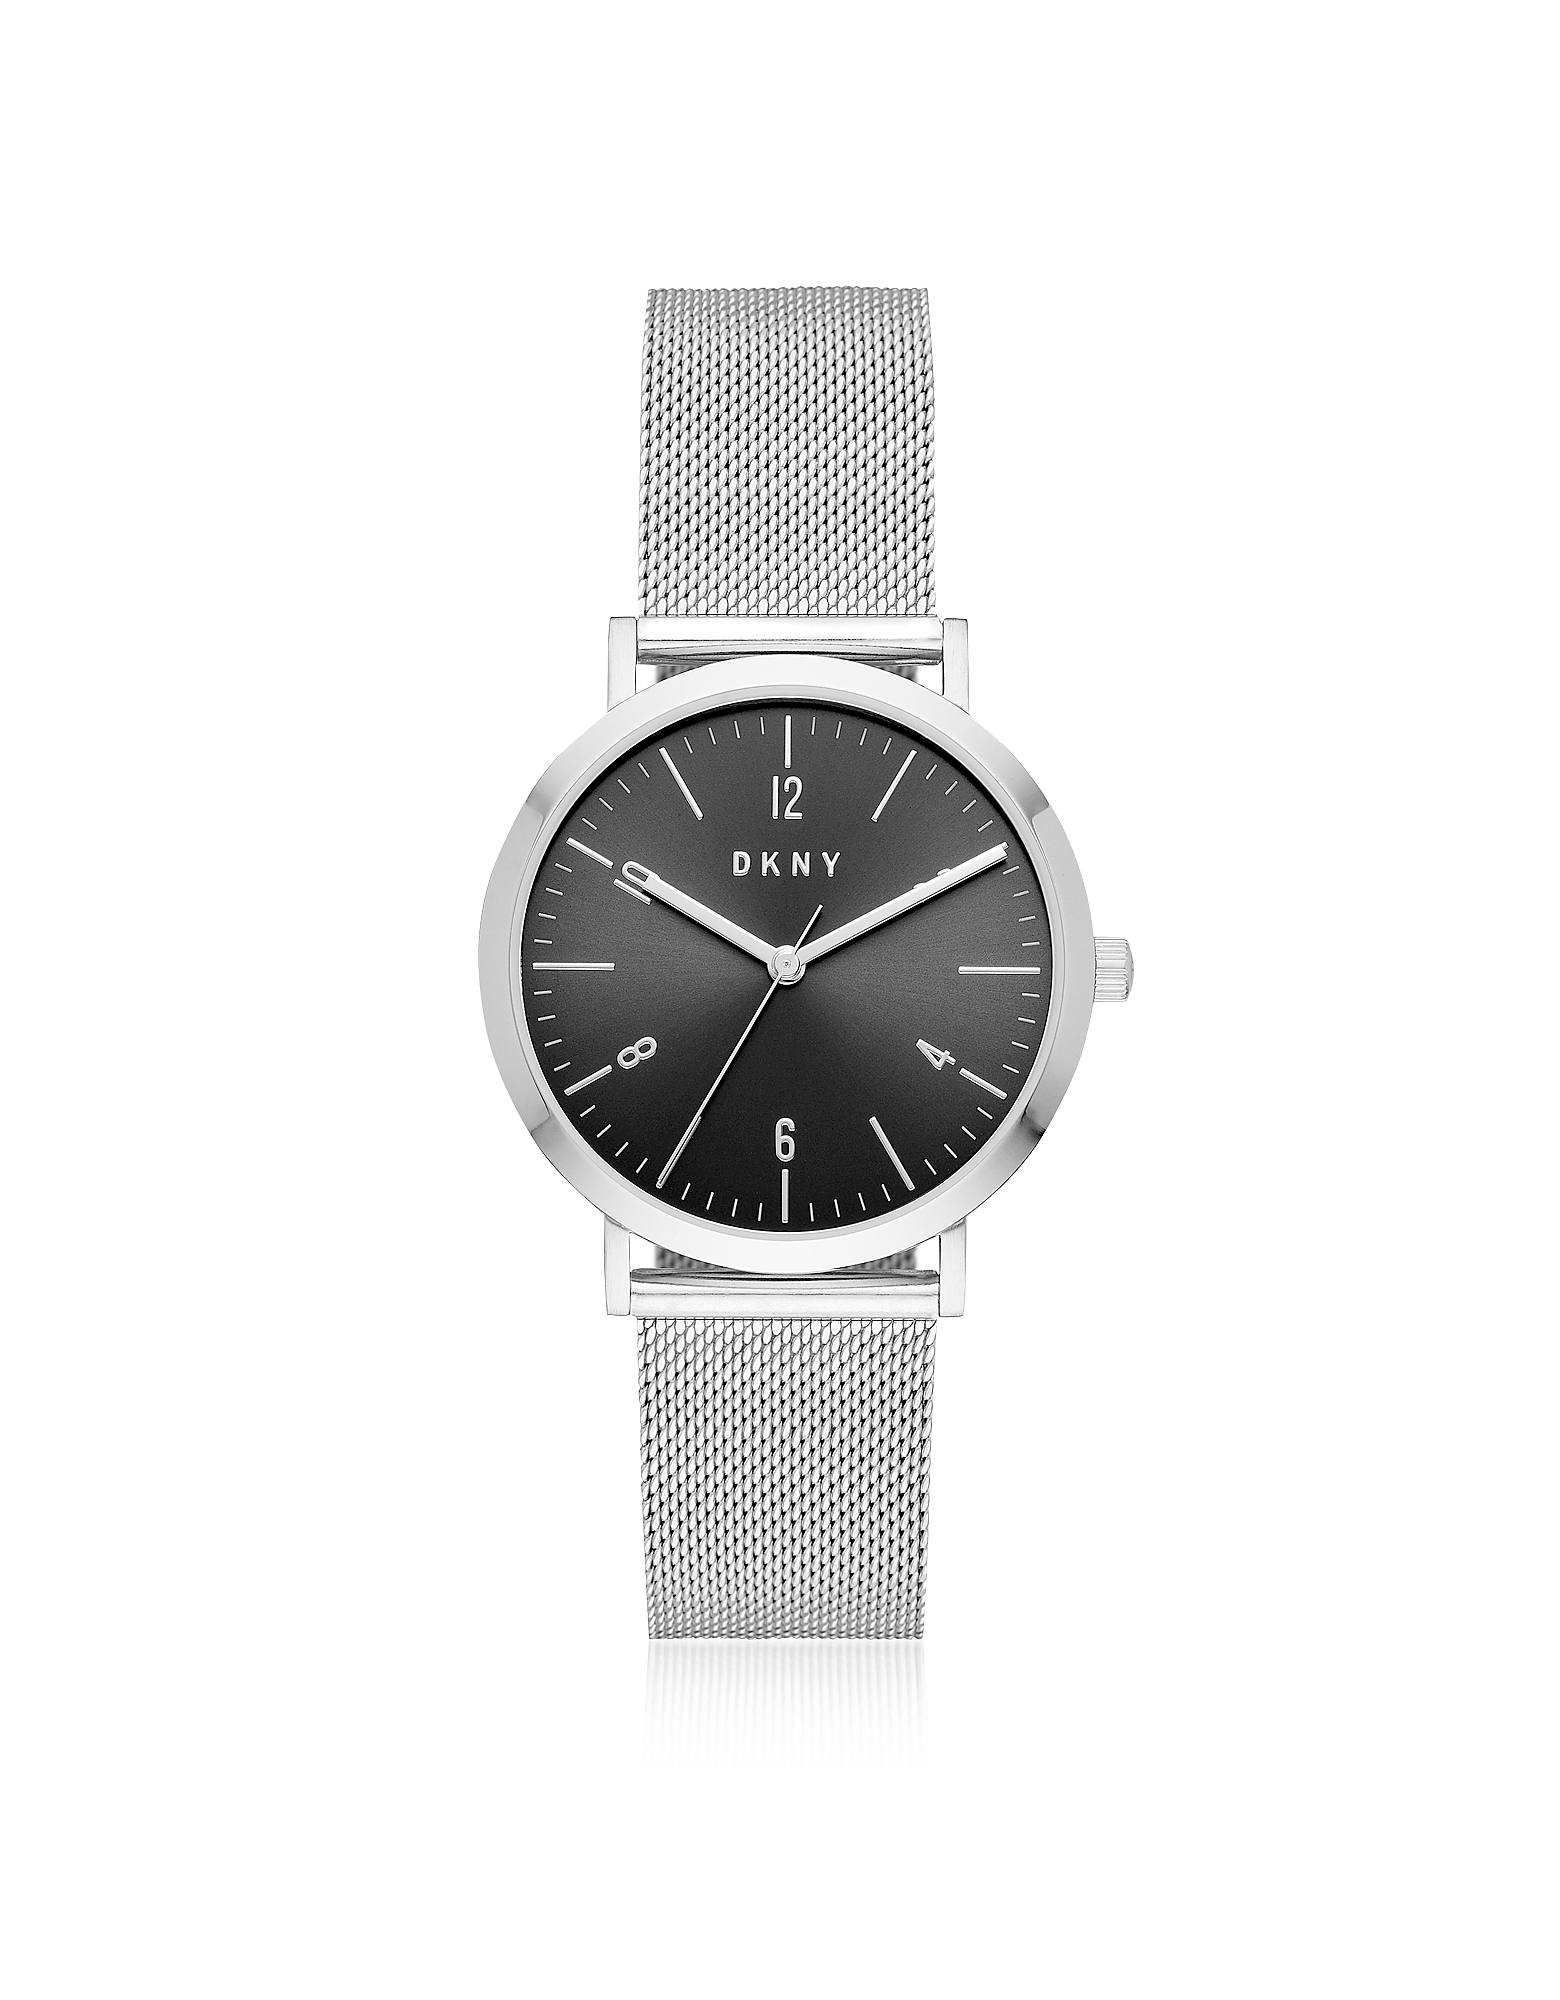 DKNY Women's Watches, Minetta Stainless Steel Mesh Women's Watch